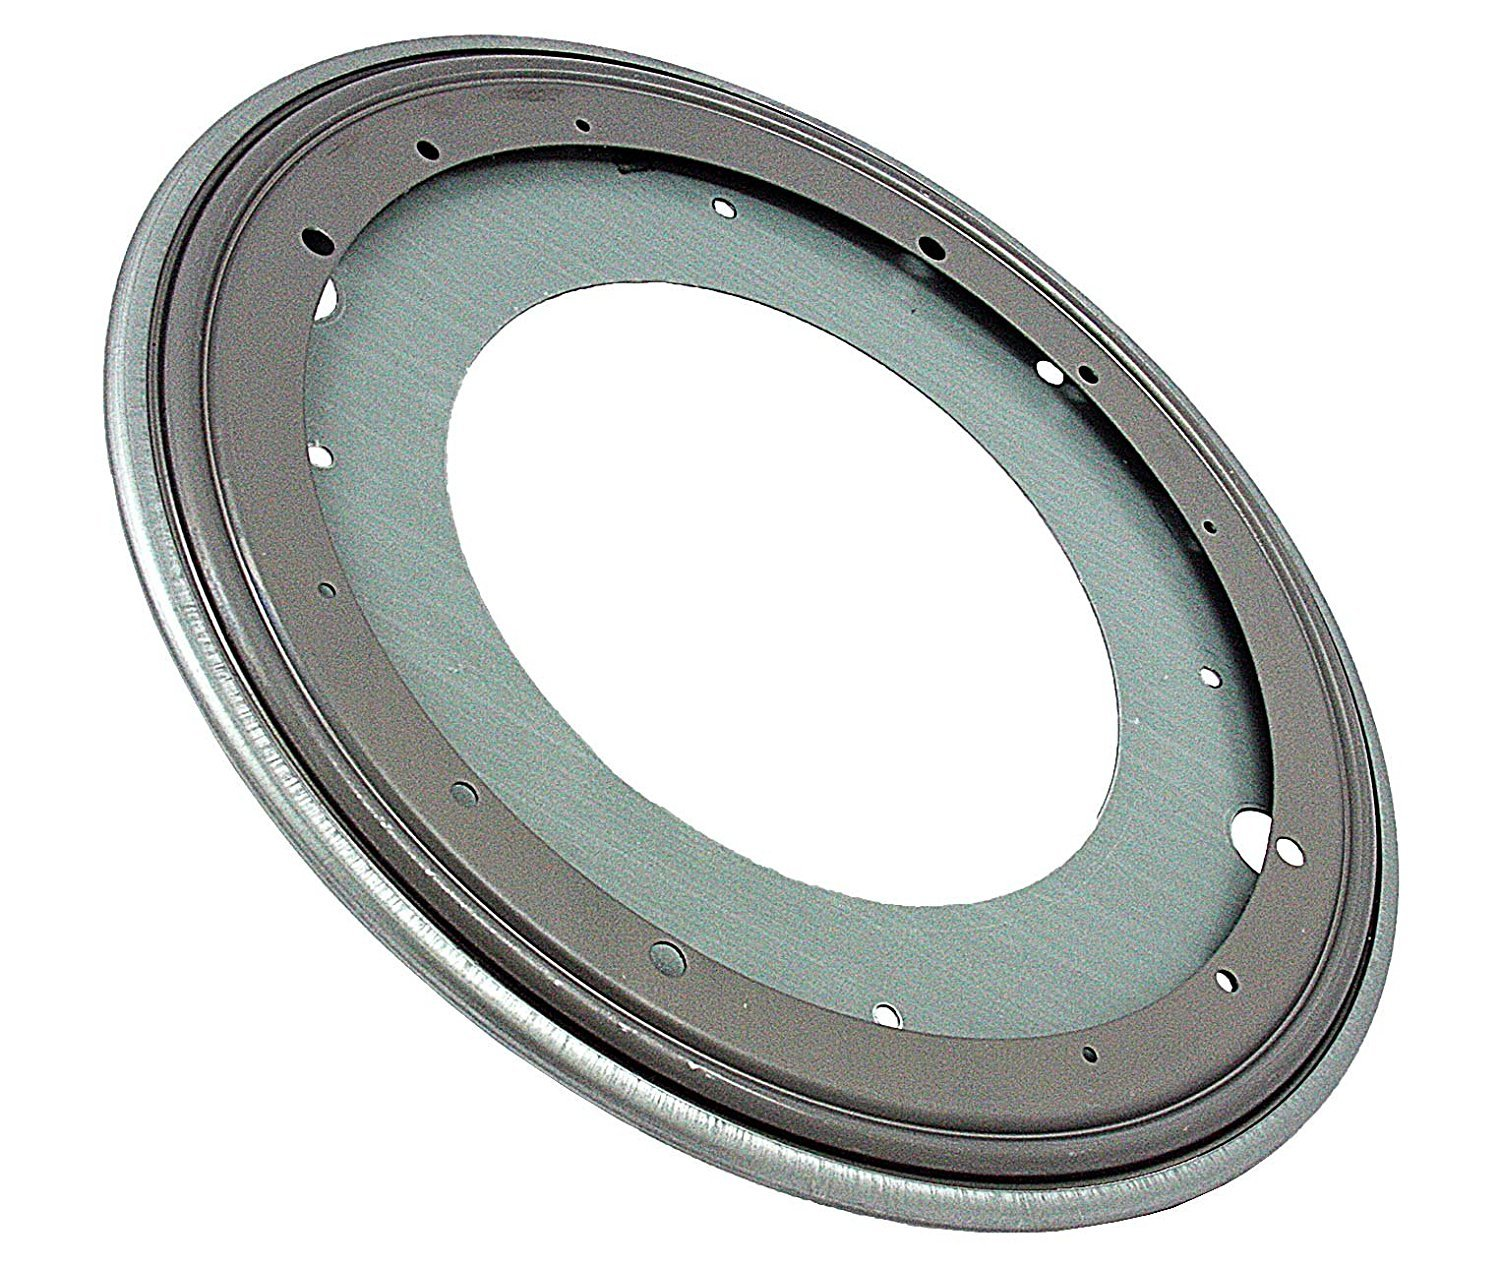 Lazy Susan 12'' inch 1000-Lb Load Capacity Hardware 5/16 Thick Turntable Bearings - Pack of 2